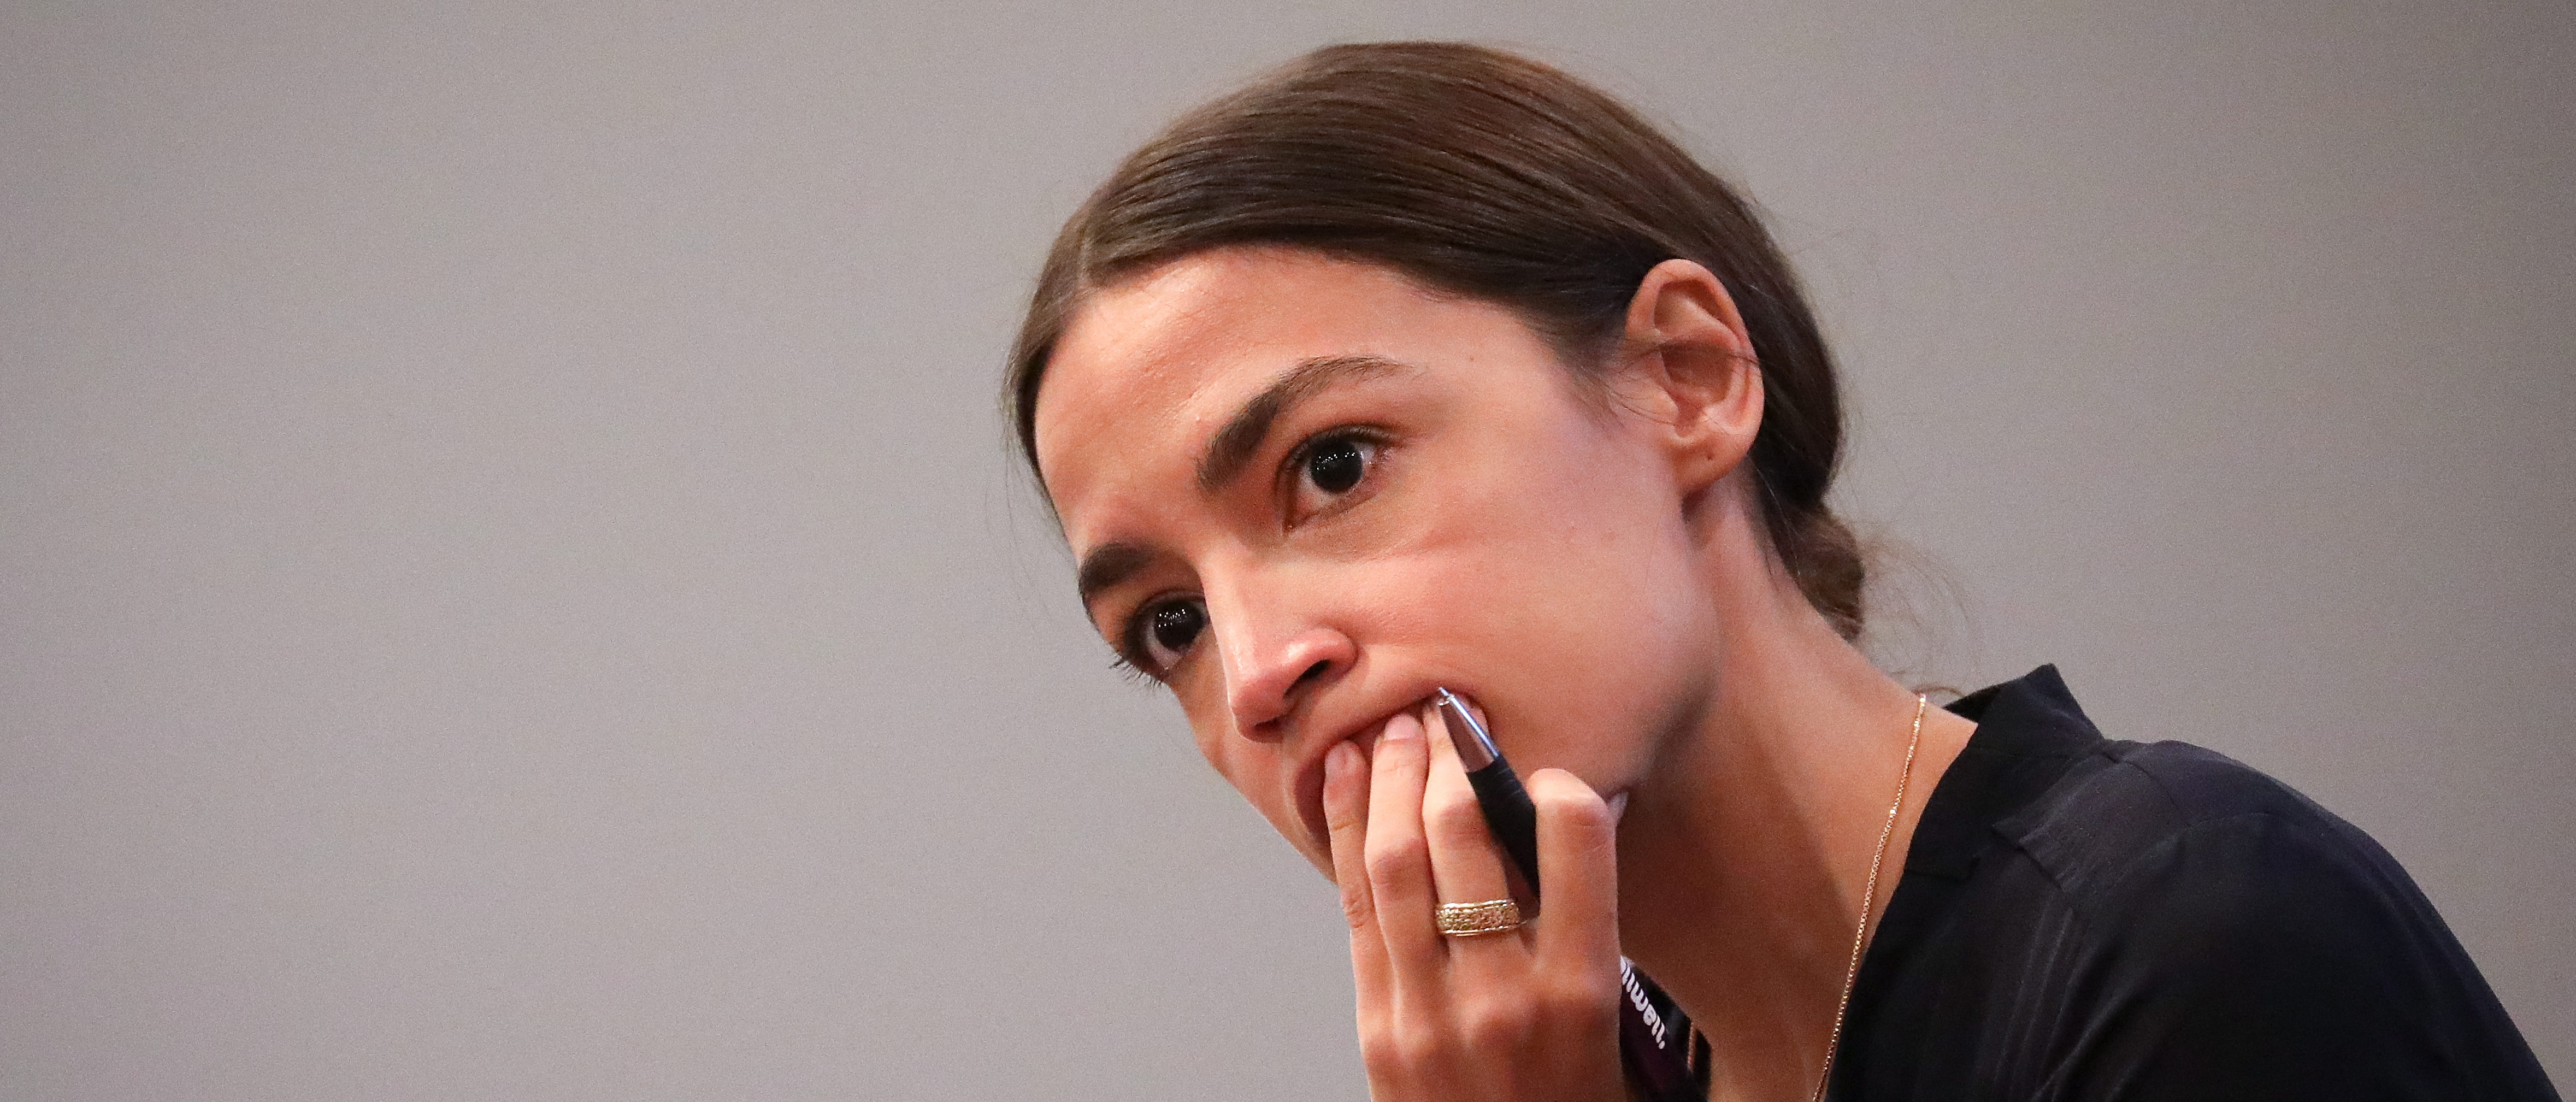 NEW YORK, NY - SEPTEMBER 19: Alexandria Ocasio-Cortez, Democratic candidate running for New York's 14th Congressional district, listens to questions at a town hall event, September 19, 2018 in The Bronx borough of New York City. In a race she is widely expected to win, Ocasio-Cortez will face Republican nominee Anthony Pappas in the November 6 general election. (Photo by Drew Angerer/Getty Images)